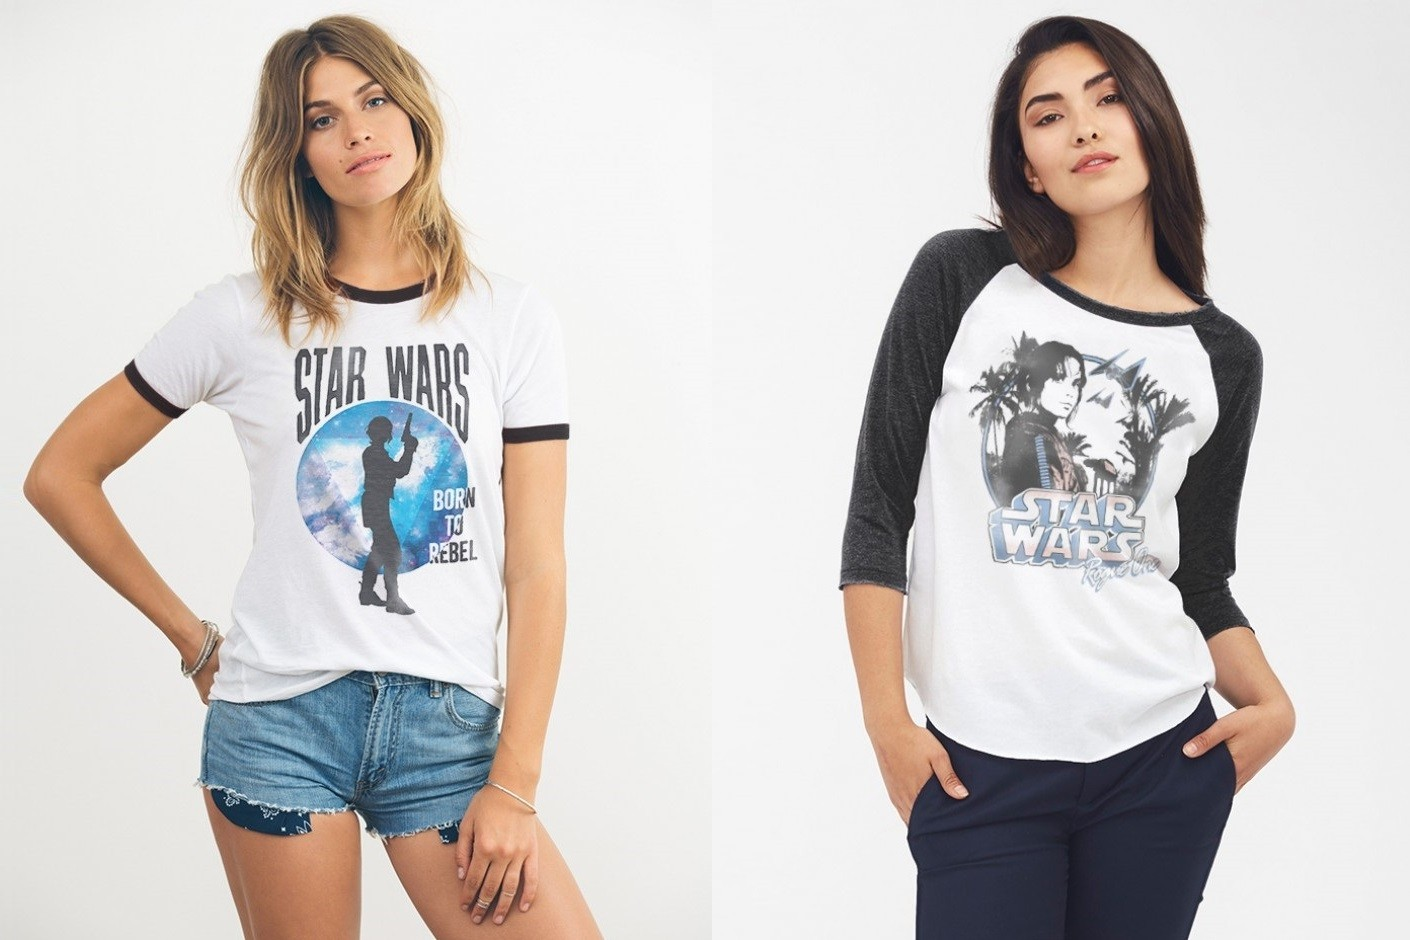 Rogue One tees at Junk Food Clothing